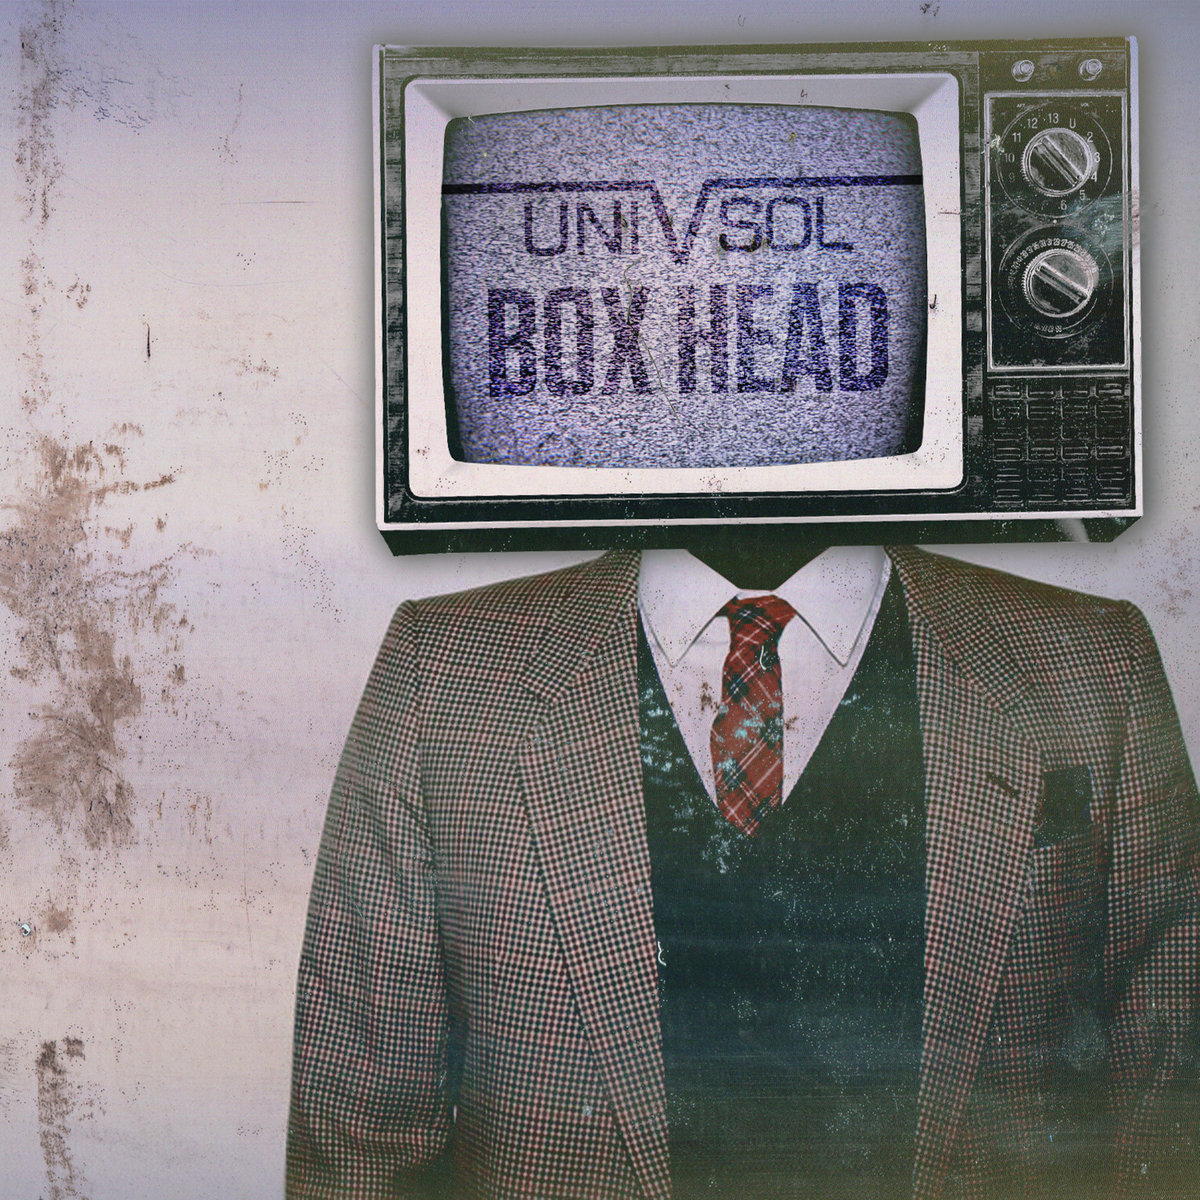 Box Head [Vocals Only] by UNI V SOL